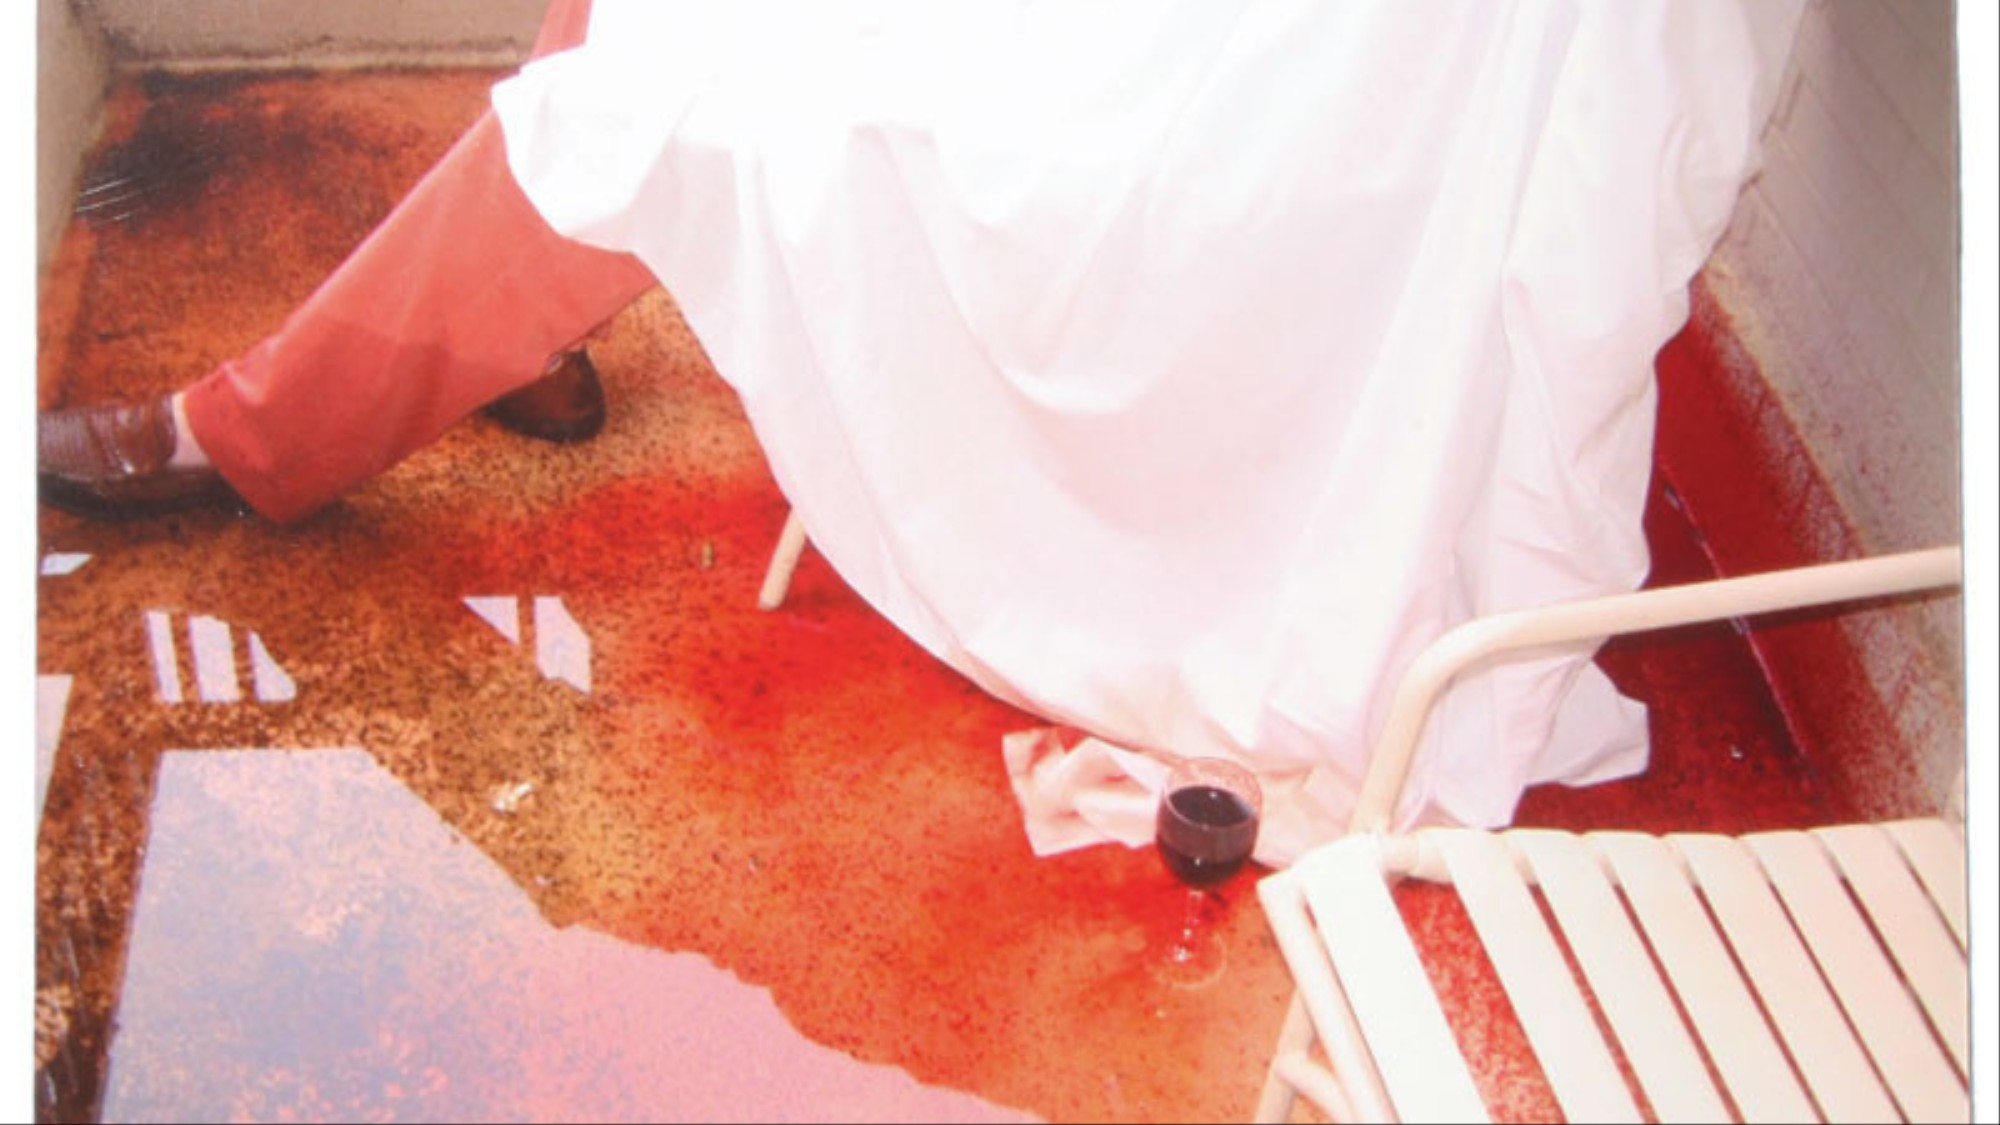 Postmortem: The Life and Deaths of a Medicolegal Death ...